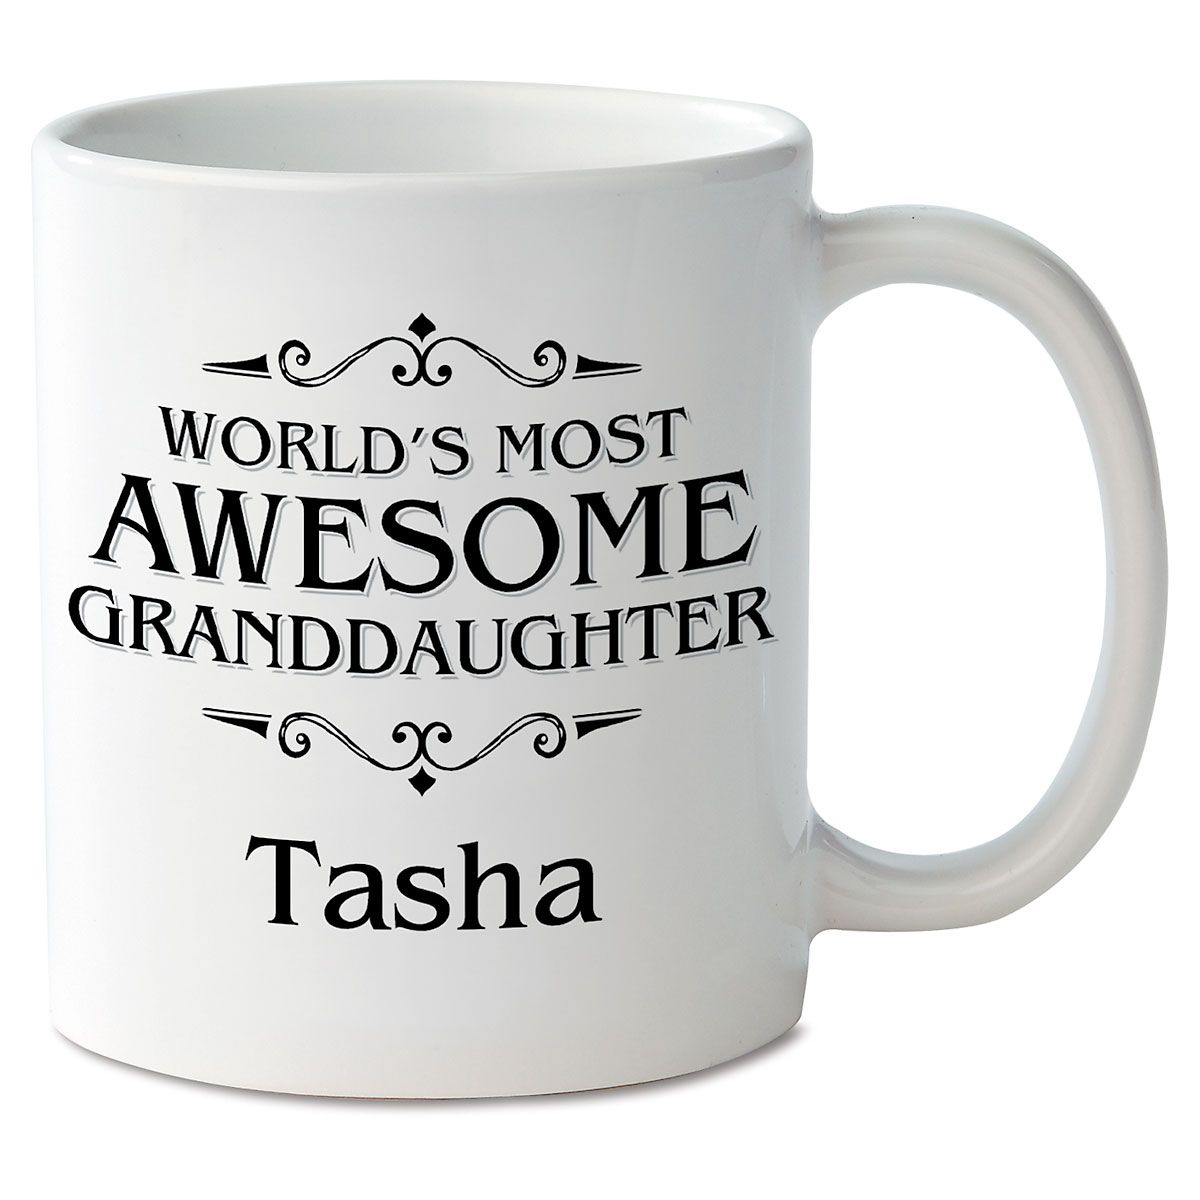 World's Most Awesome Granddaughter Personalized Mug